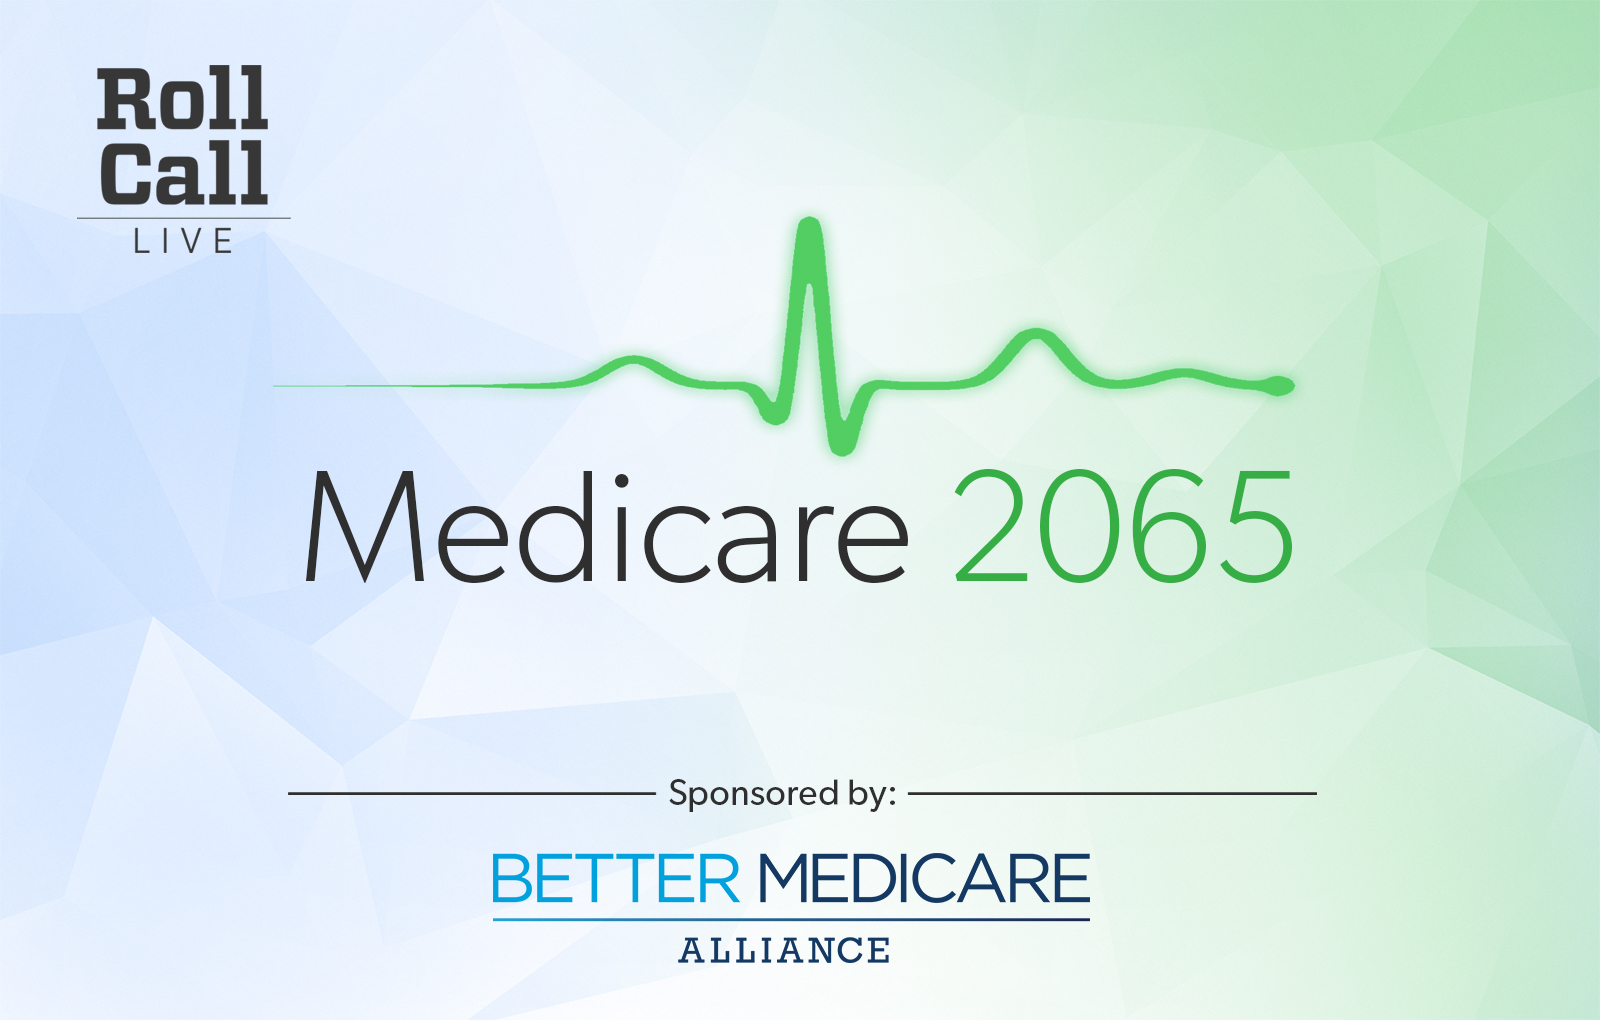 Roll Call Live's Medicare 2065